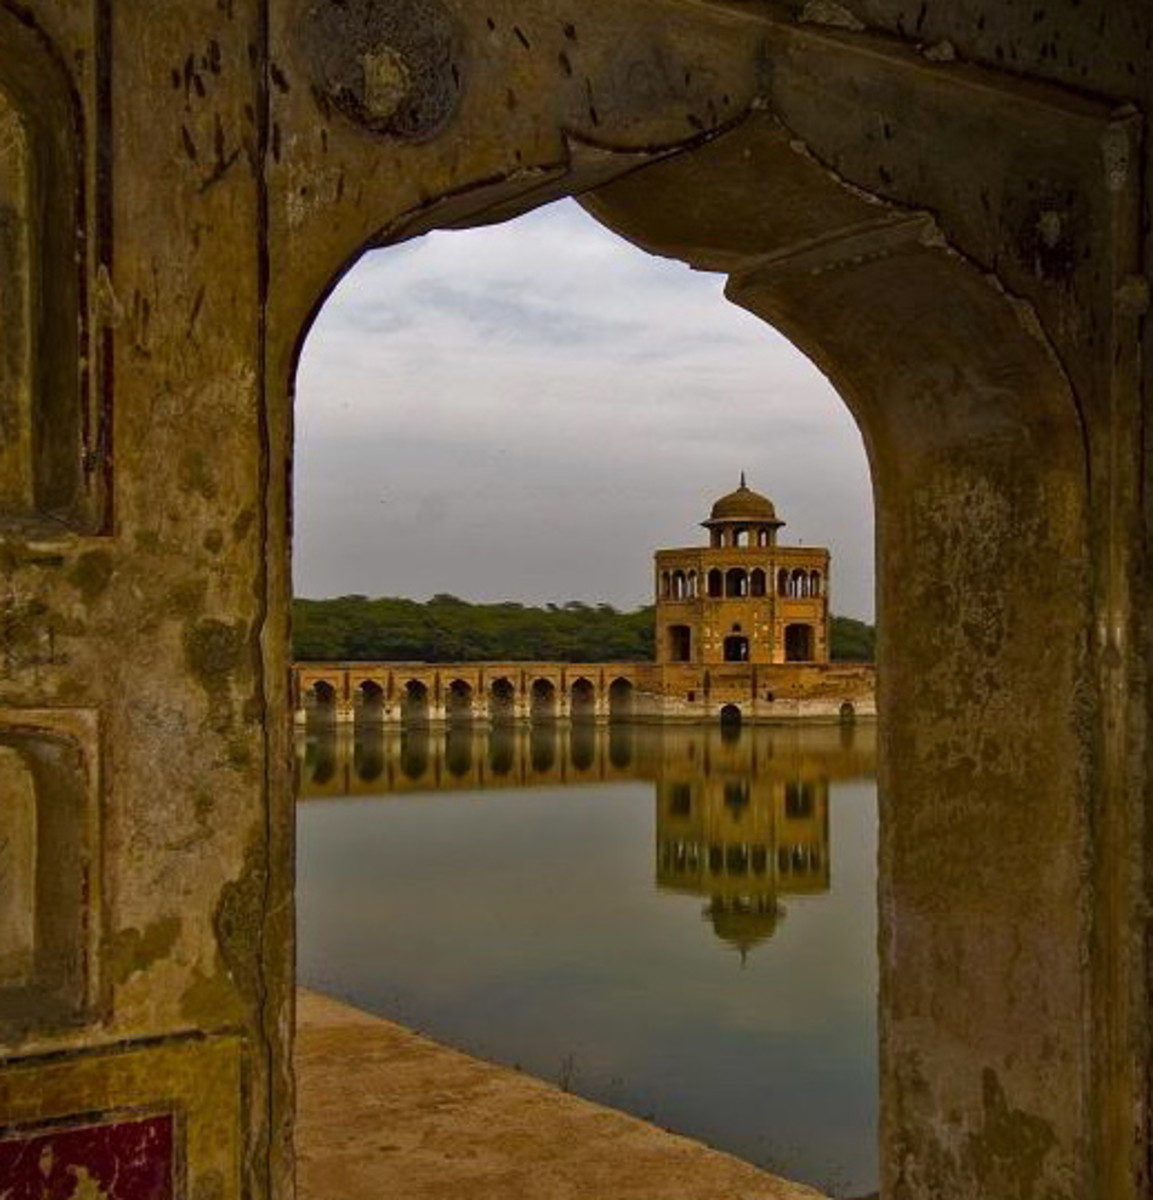 'Hiran Minar' or Deer Tower was built during the reign of Jahangir & Shah Jahan, 1606, to honor the memory of a pet hunting antelope of the king.